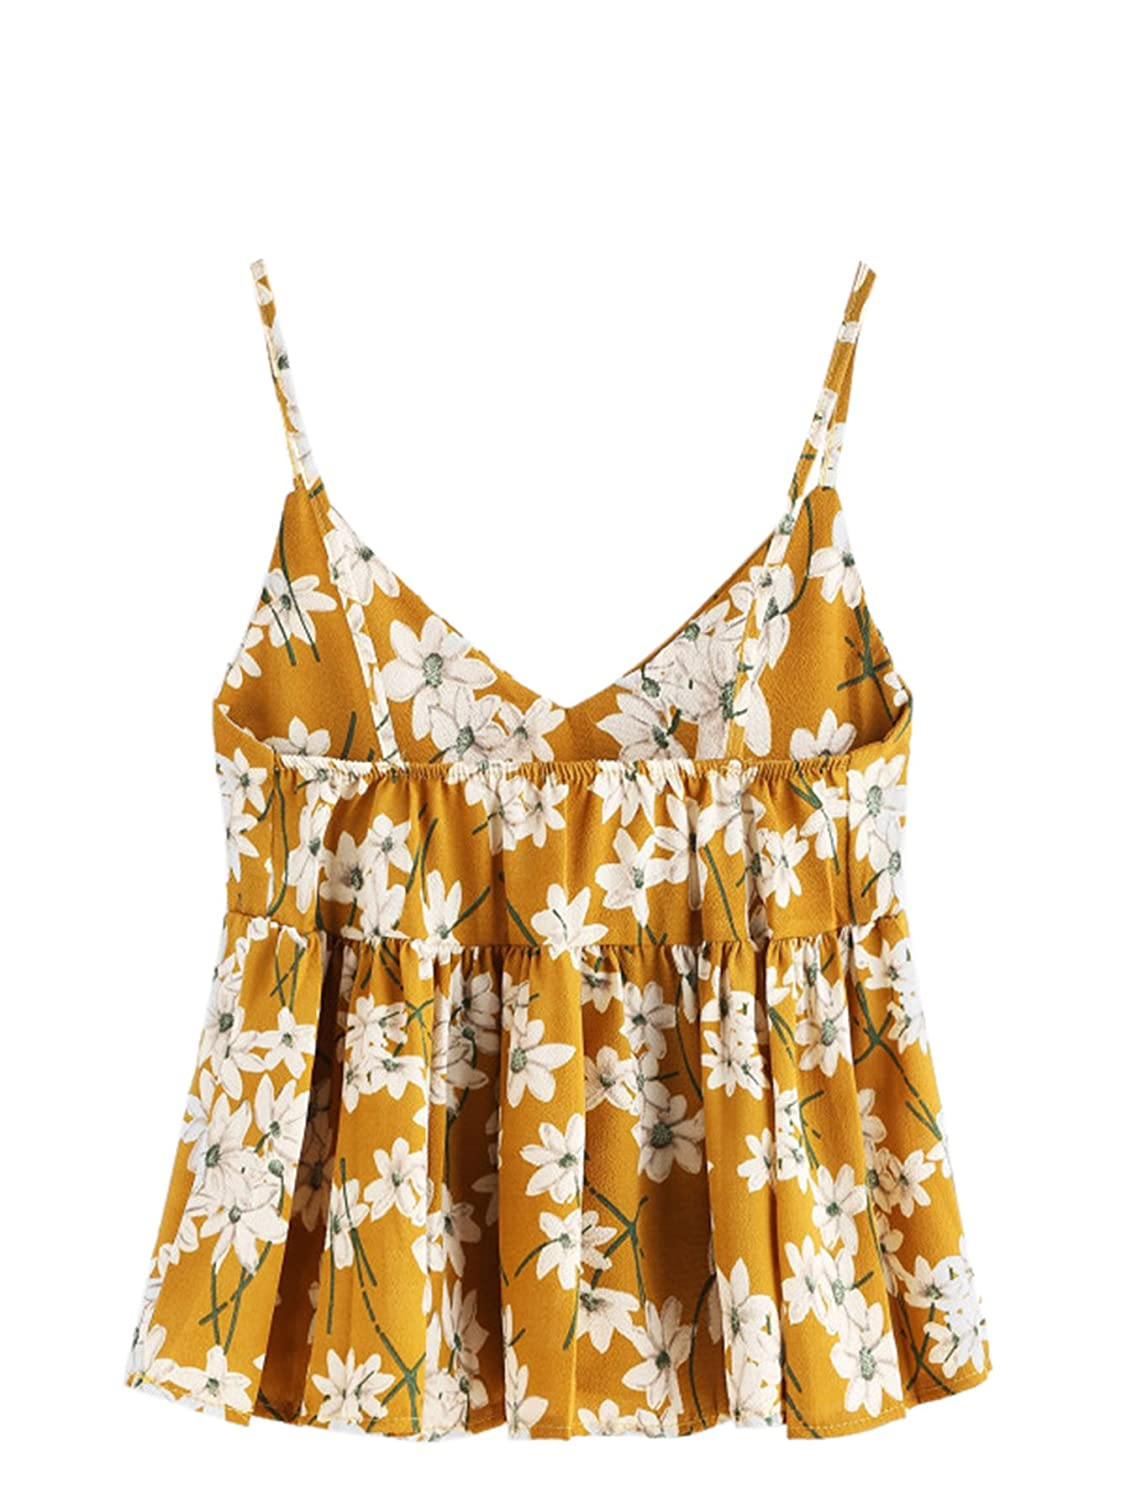 0a6b9052e23b1 Romwe Women s Floral Print Random Babydoll Cami Top Yellow One-Size at  Amazon Women s Clothing store